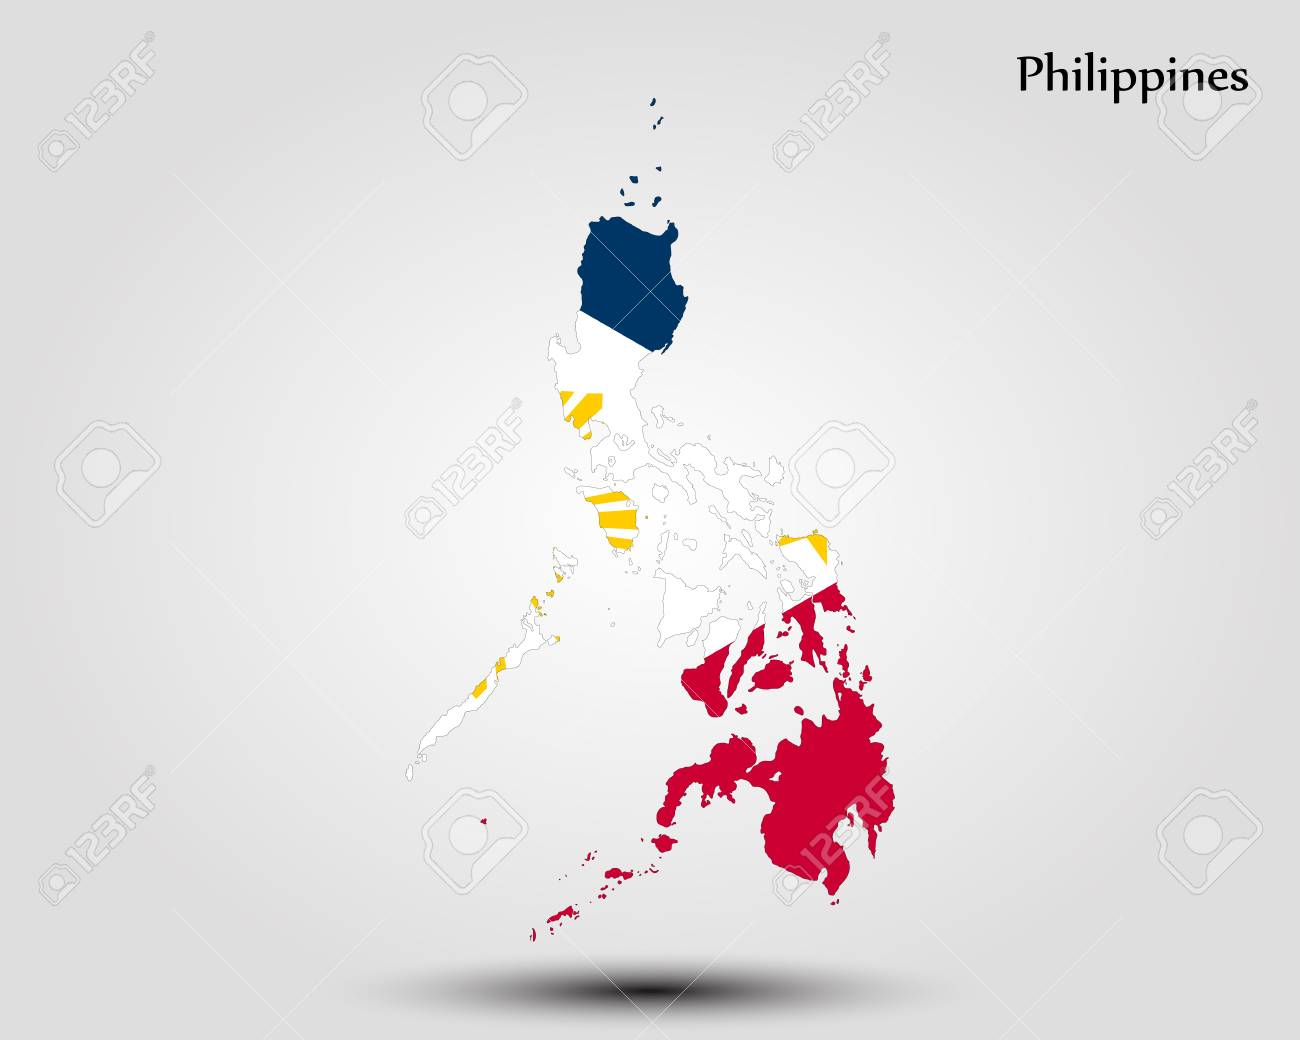 Map of Philippines. Vector illustration. World map Illustration Map Of Philippines In World on map showing philippines, map of philippines in imperialism, map of philippines in asia, map of bohol island philippines, map of morocco and surrounding countries, map of philippines on world map,